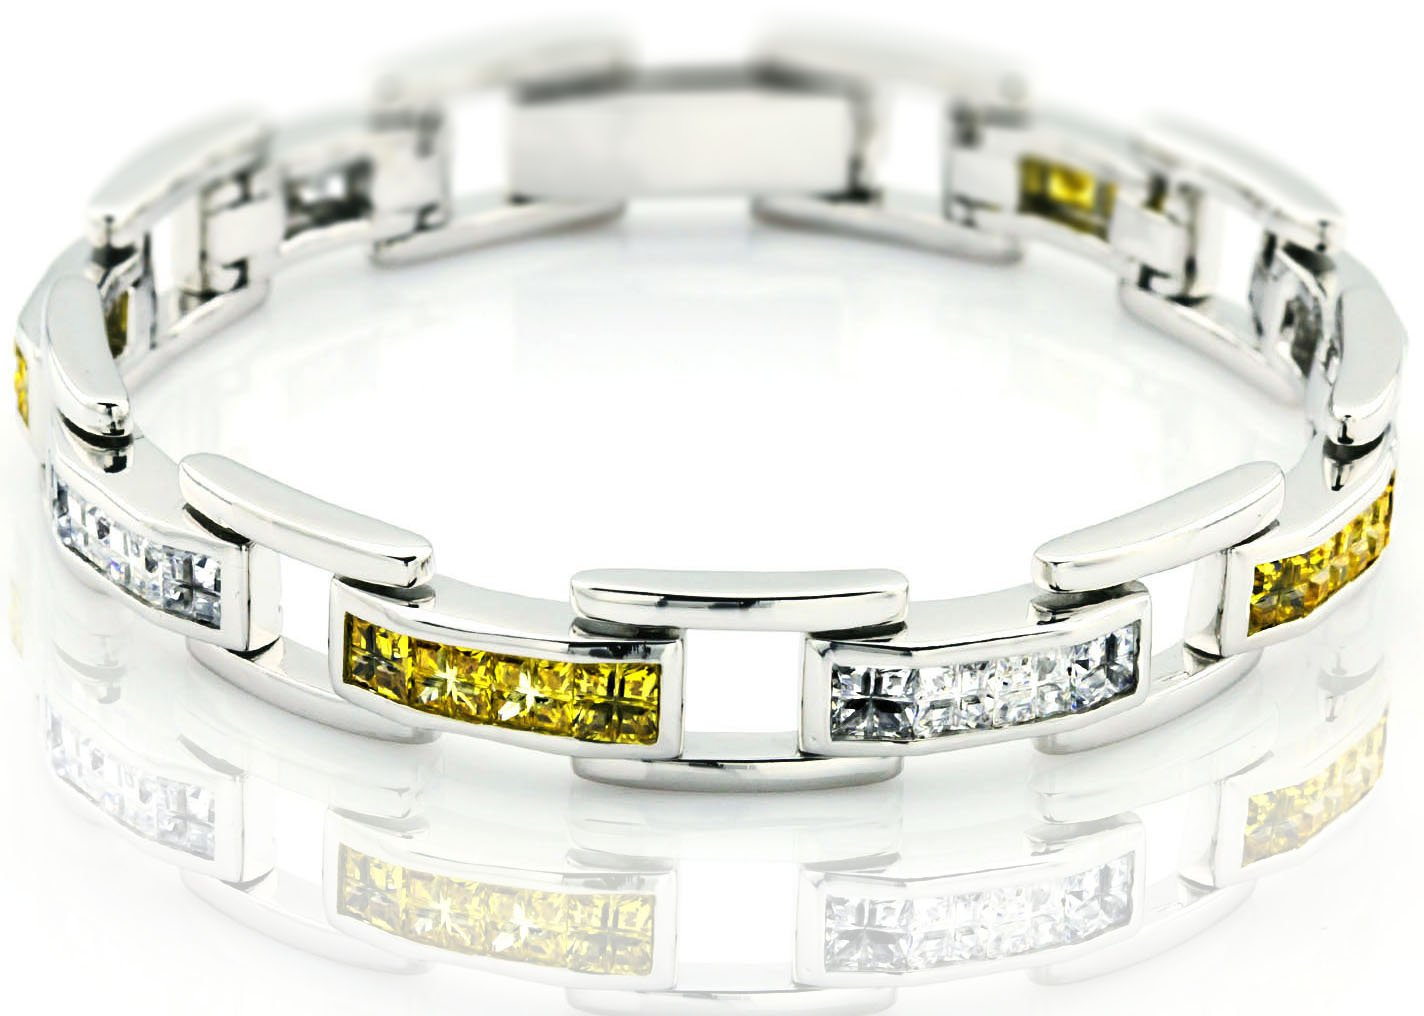 Men's Sterling Silver .925 Original design Bracelet with 32 fancy color and white Cubic Zirconia (CZ) Stones and Box Lock, Platinum Plated. Sizes available 8''